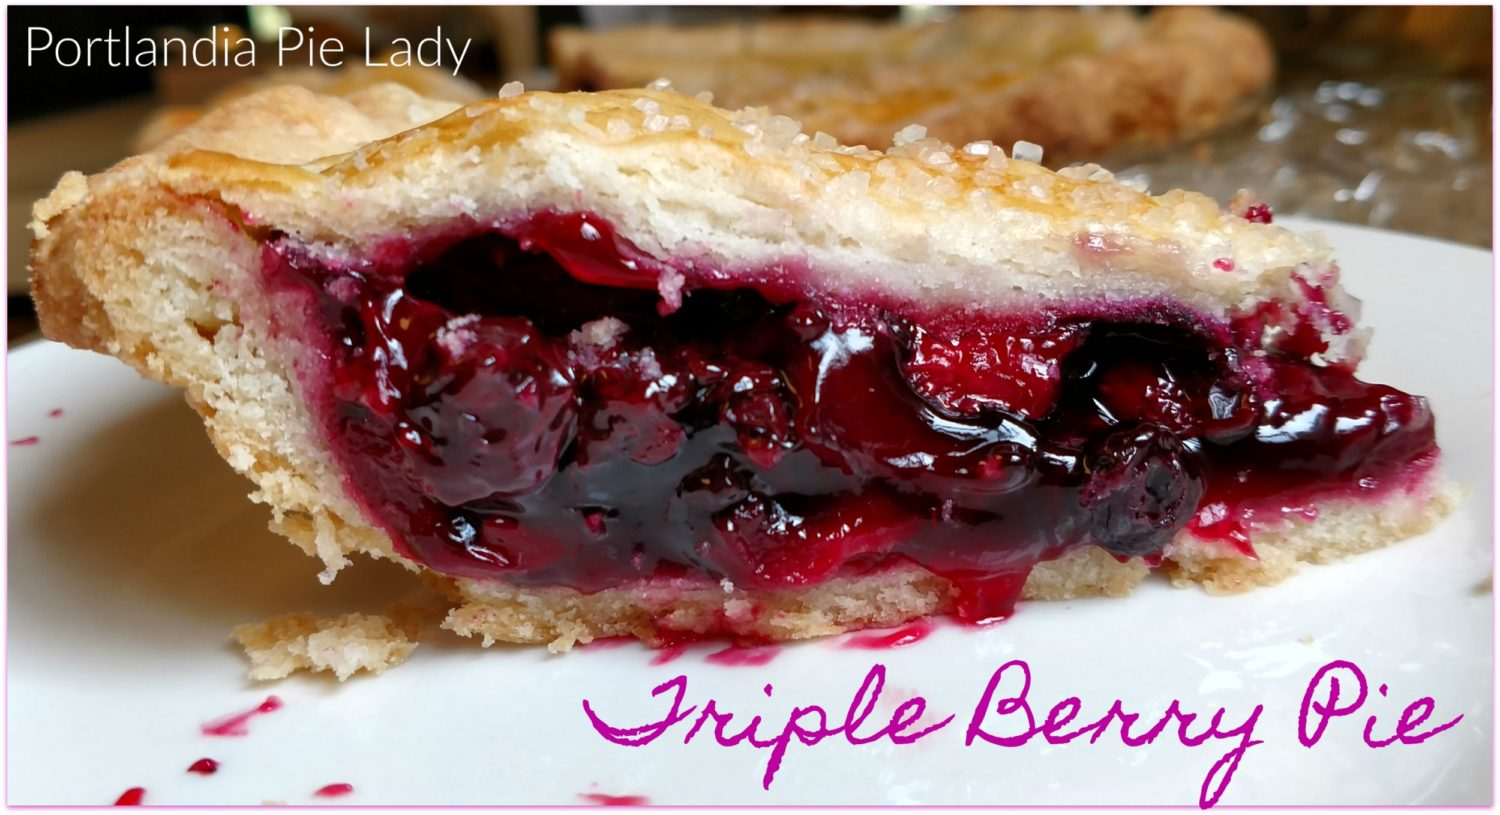 Triple Berry Pie captures that fresh-picked berry taste, perfectly baked filling in an ultra flaky crust; no watery runny berry pie ever again!